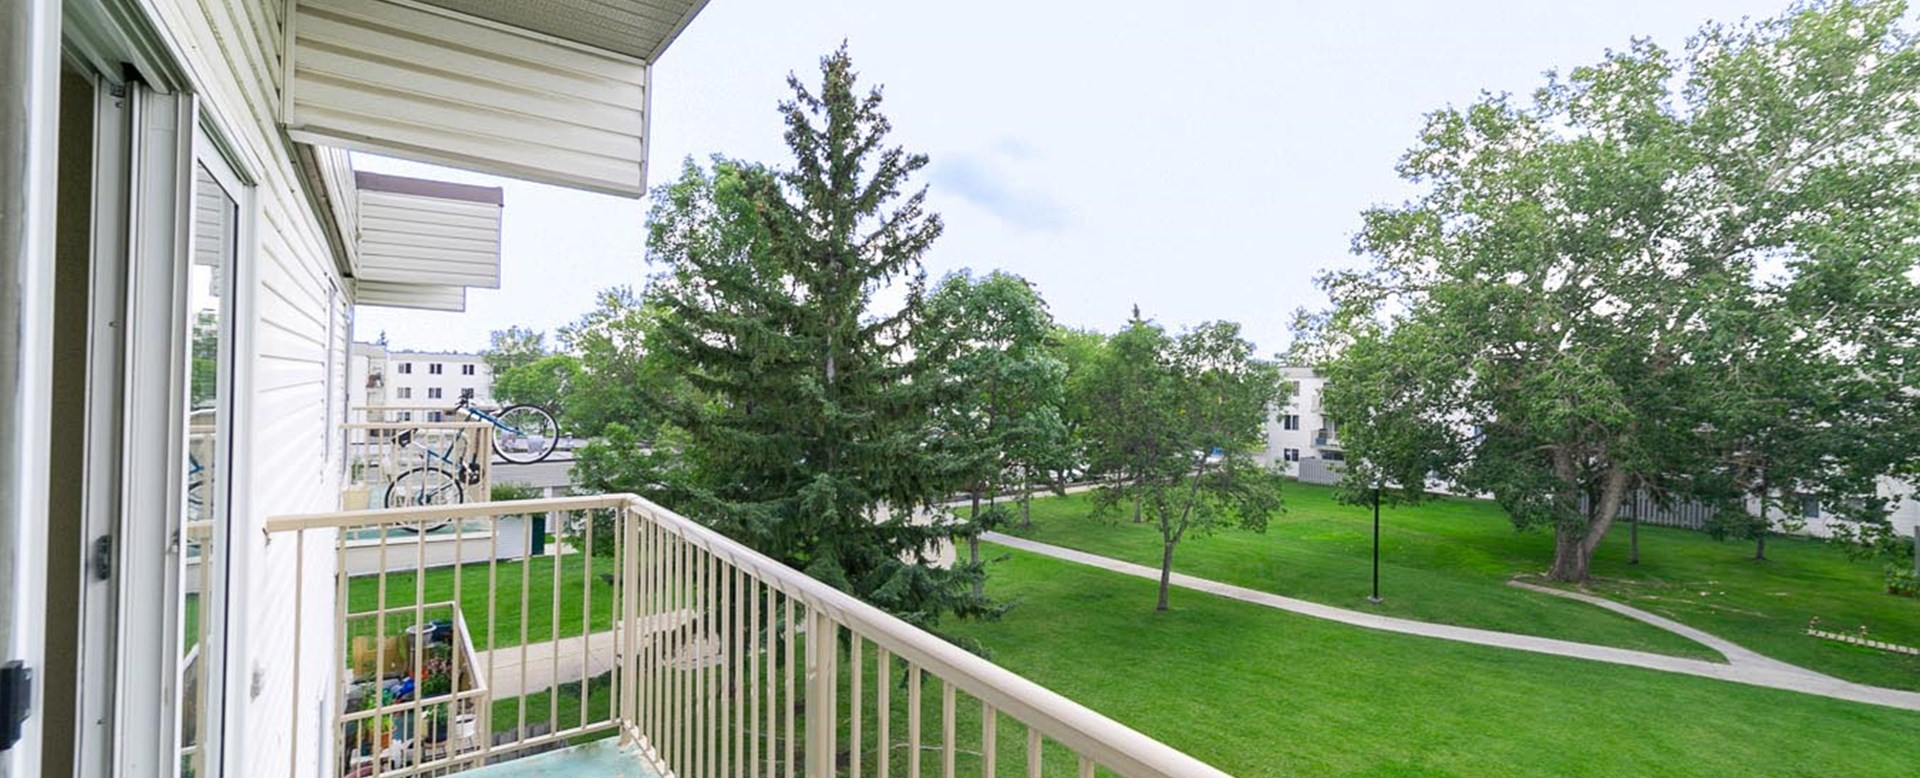 Balcony View from Leewood Village